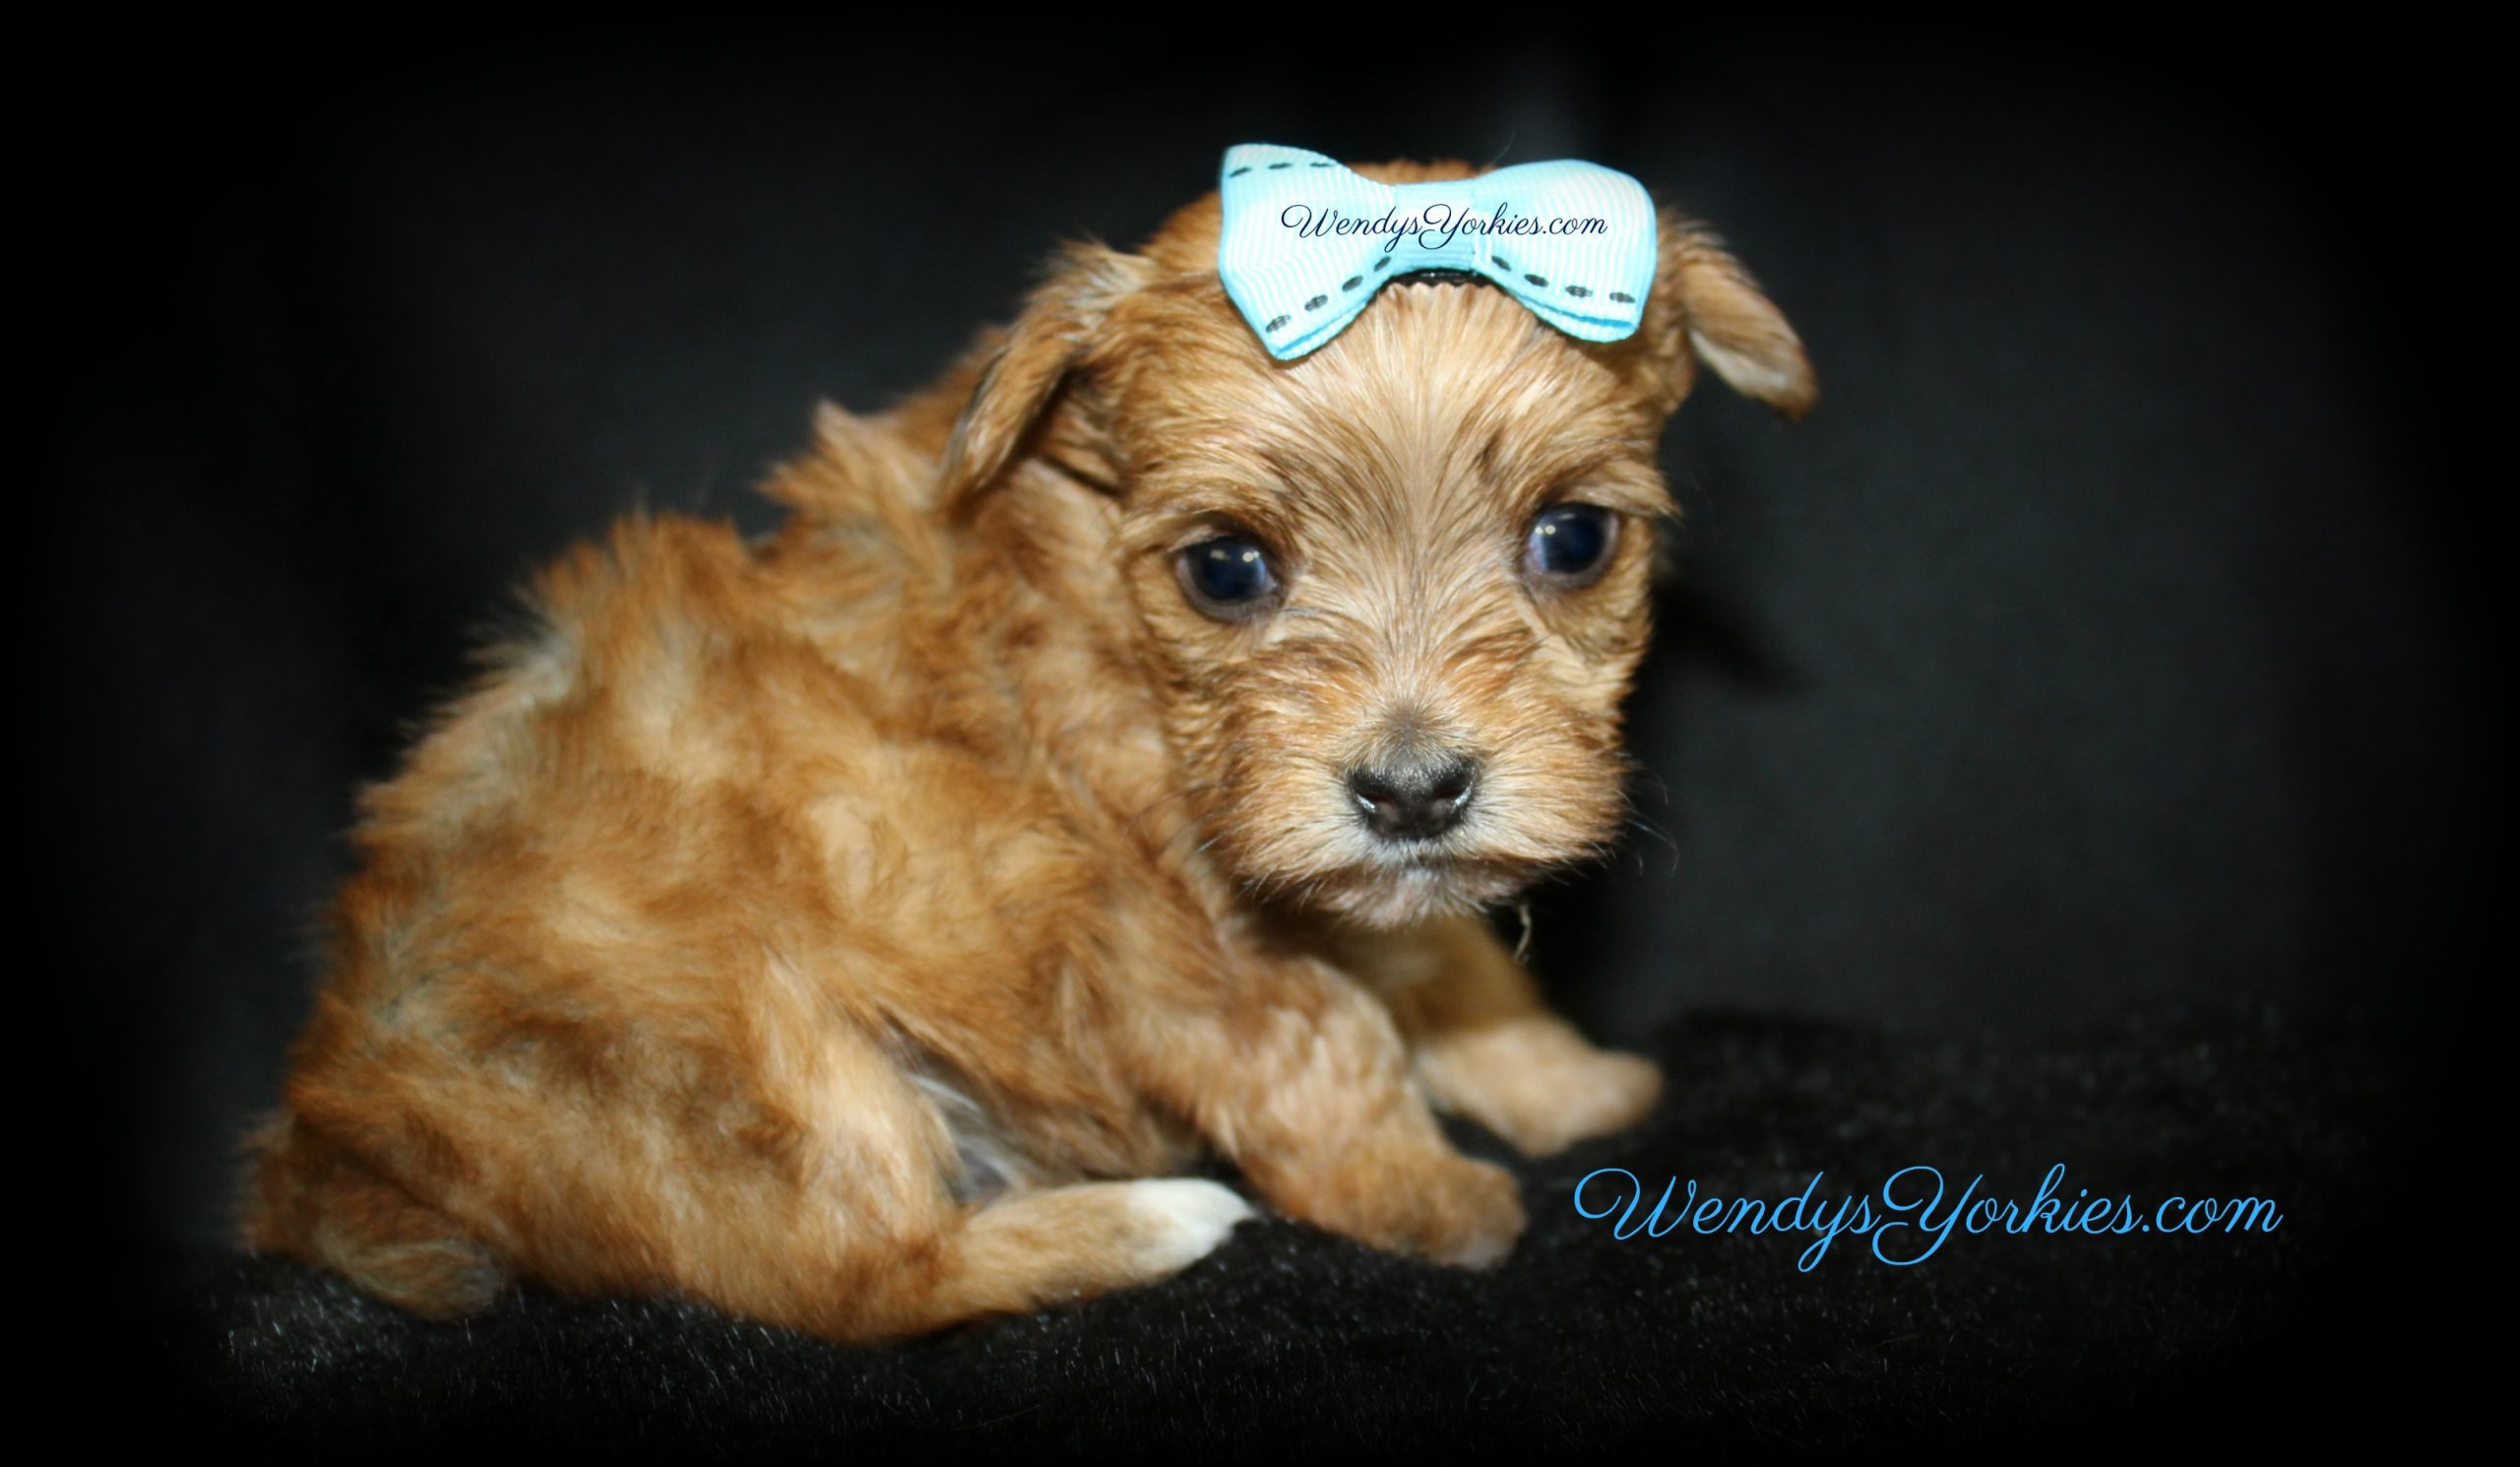 Teacup Male Yorkie puppy for sale, Lela m1, WendysYorkies.com